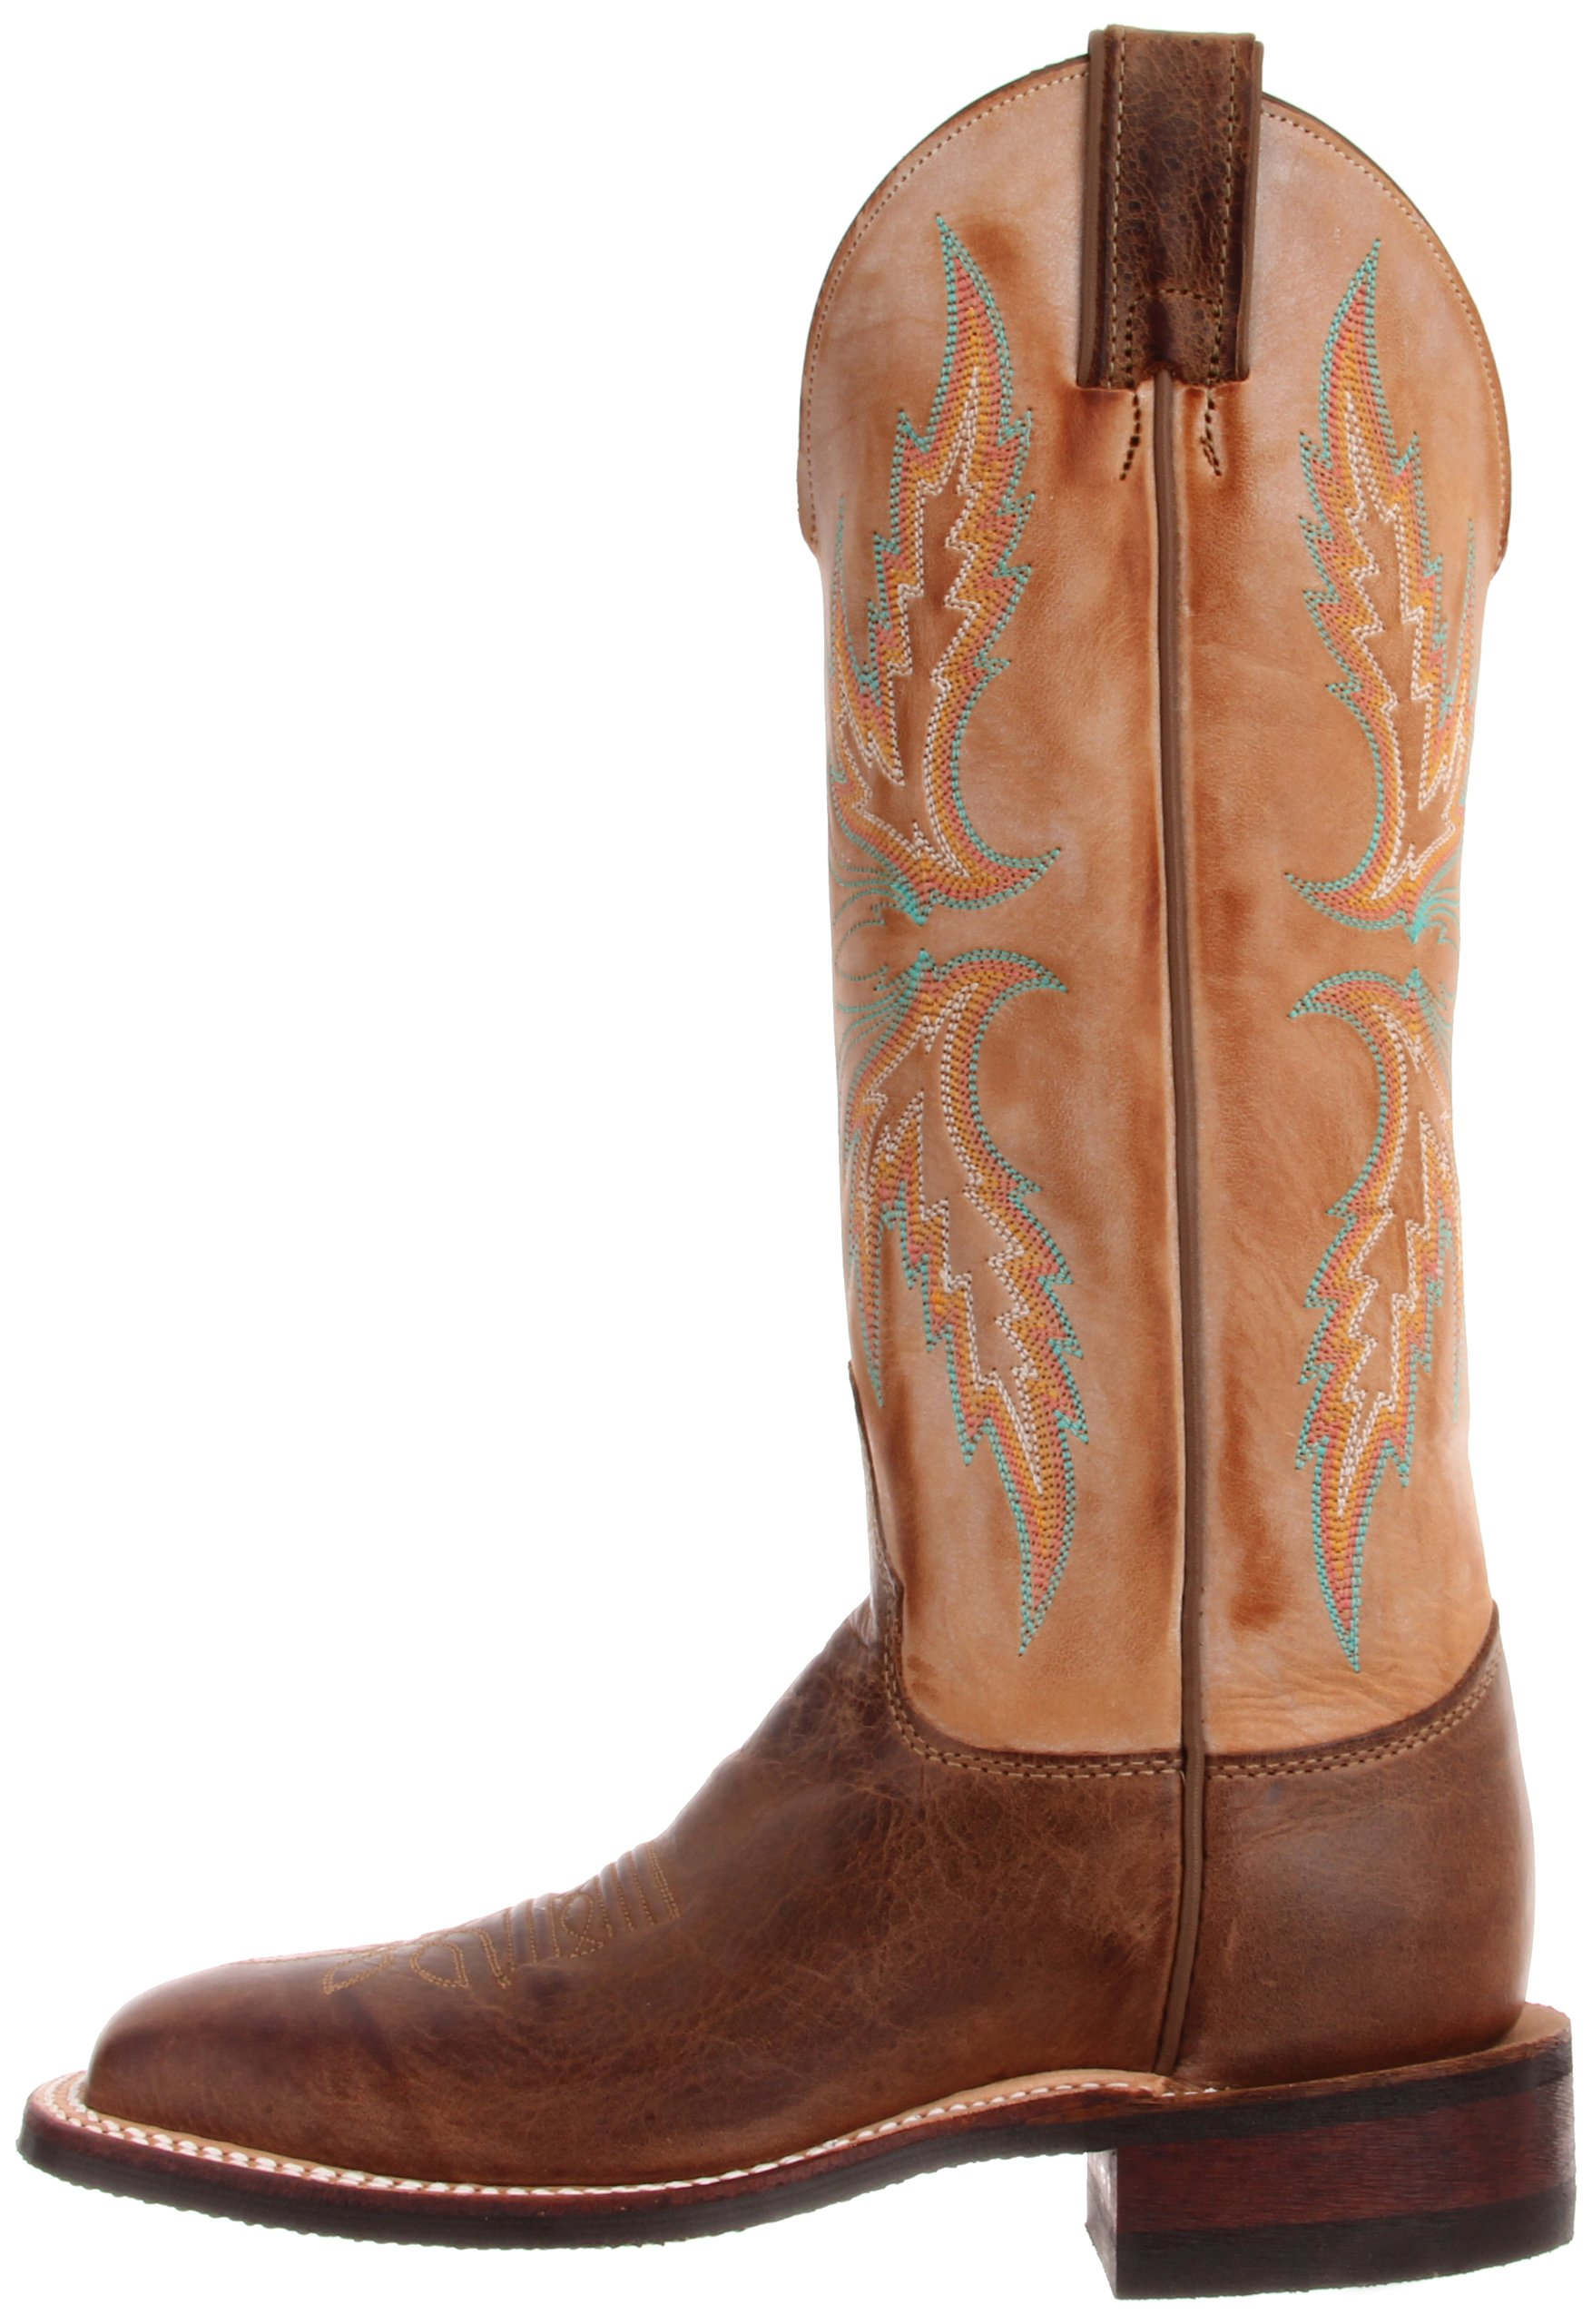 Justin Boots Women's U.S.A. Bent Rail Collection 13'' Boot Wide Square Double Stitch Toe Performance Rubber Outsole,Arizona Mocha/Fogged Camel,6.5 B US by Justin Boots (Image #5)